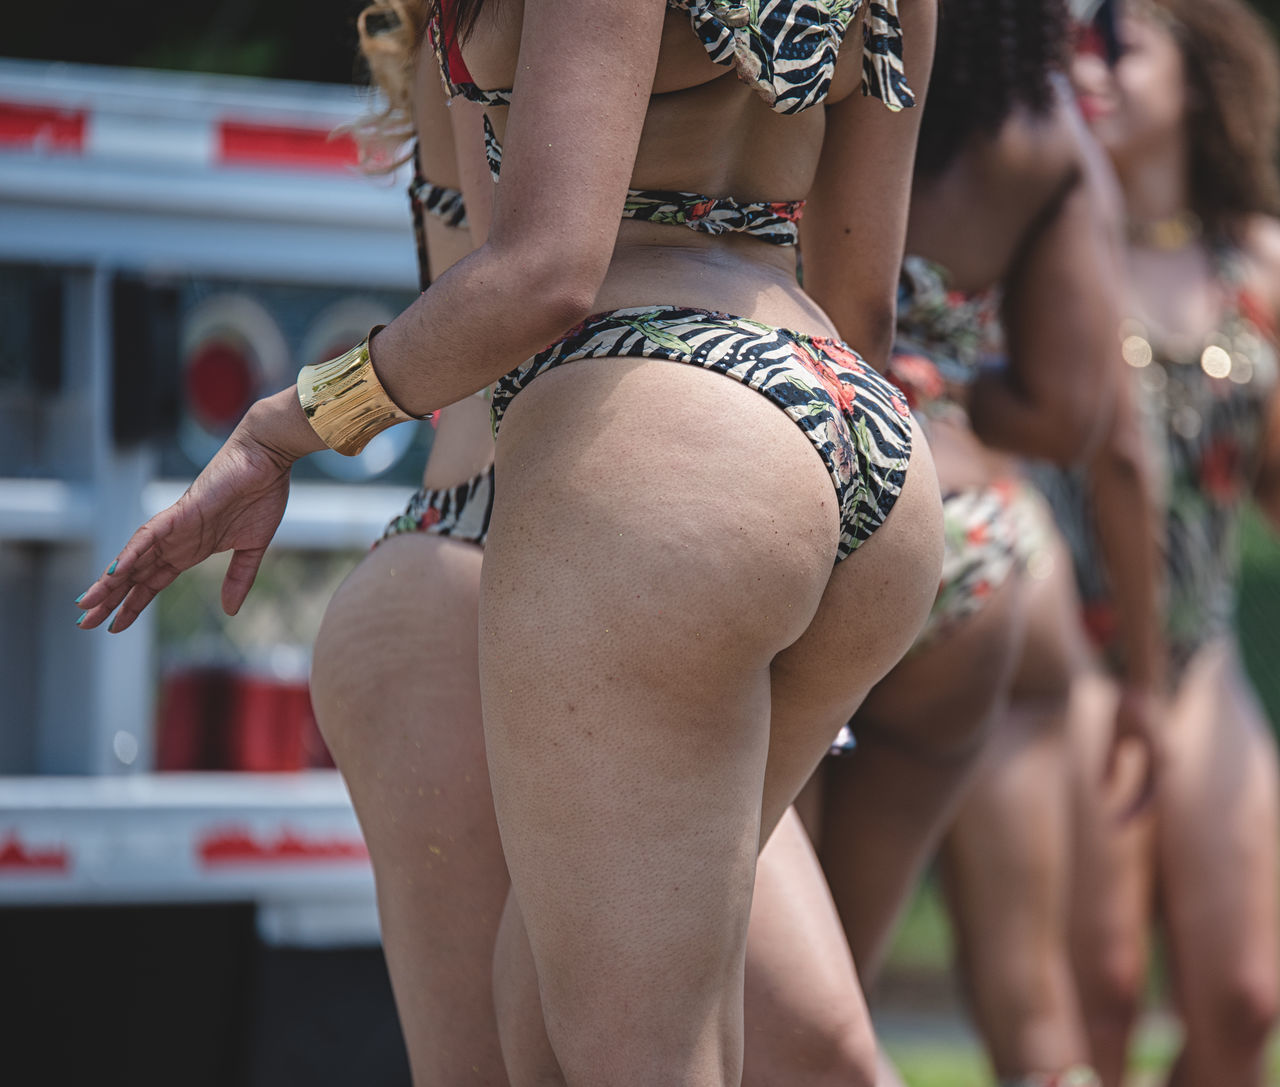 Atlanta Bikini Caribbean Carnival Casual Clothing Close-up Dancers Day Enjoyment Festival Focus On Foreground Fun Hot Leisure Activity Lifestyles Nikon D750 Outdoors Parade Costume Photographyisthemuse Selective Focus Sexygirl Summertime SexyGirl.♥ Young Women